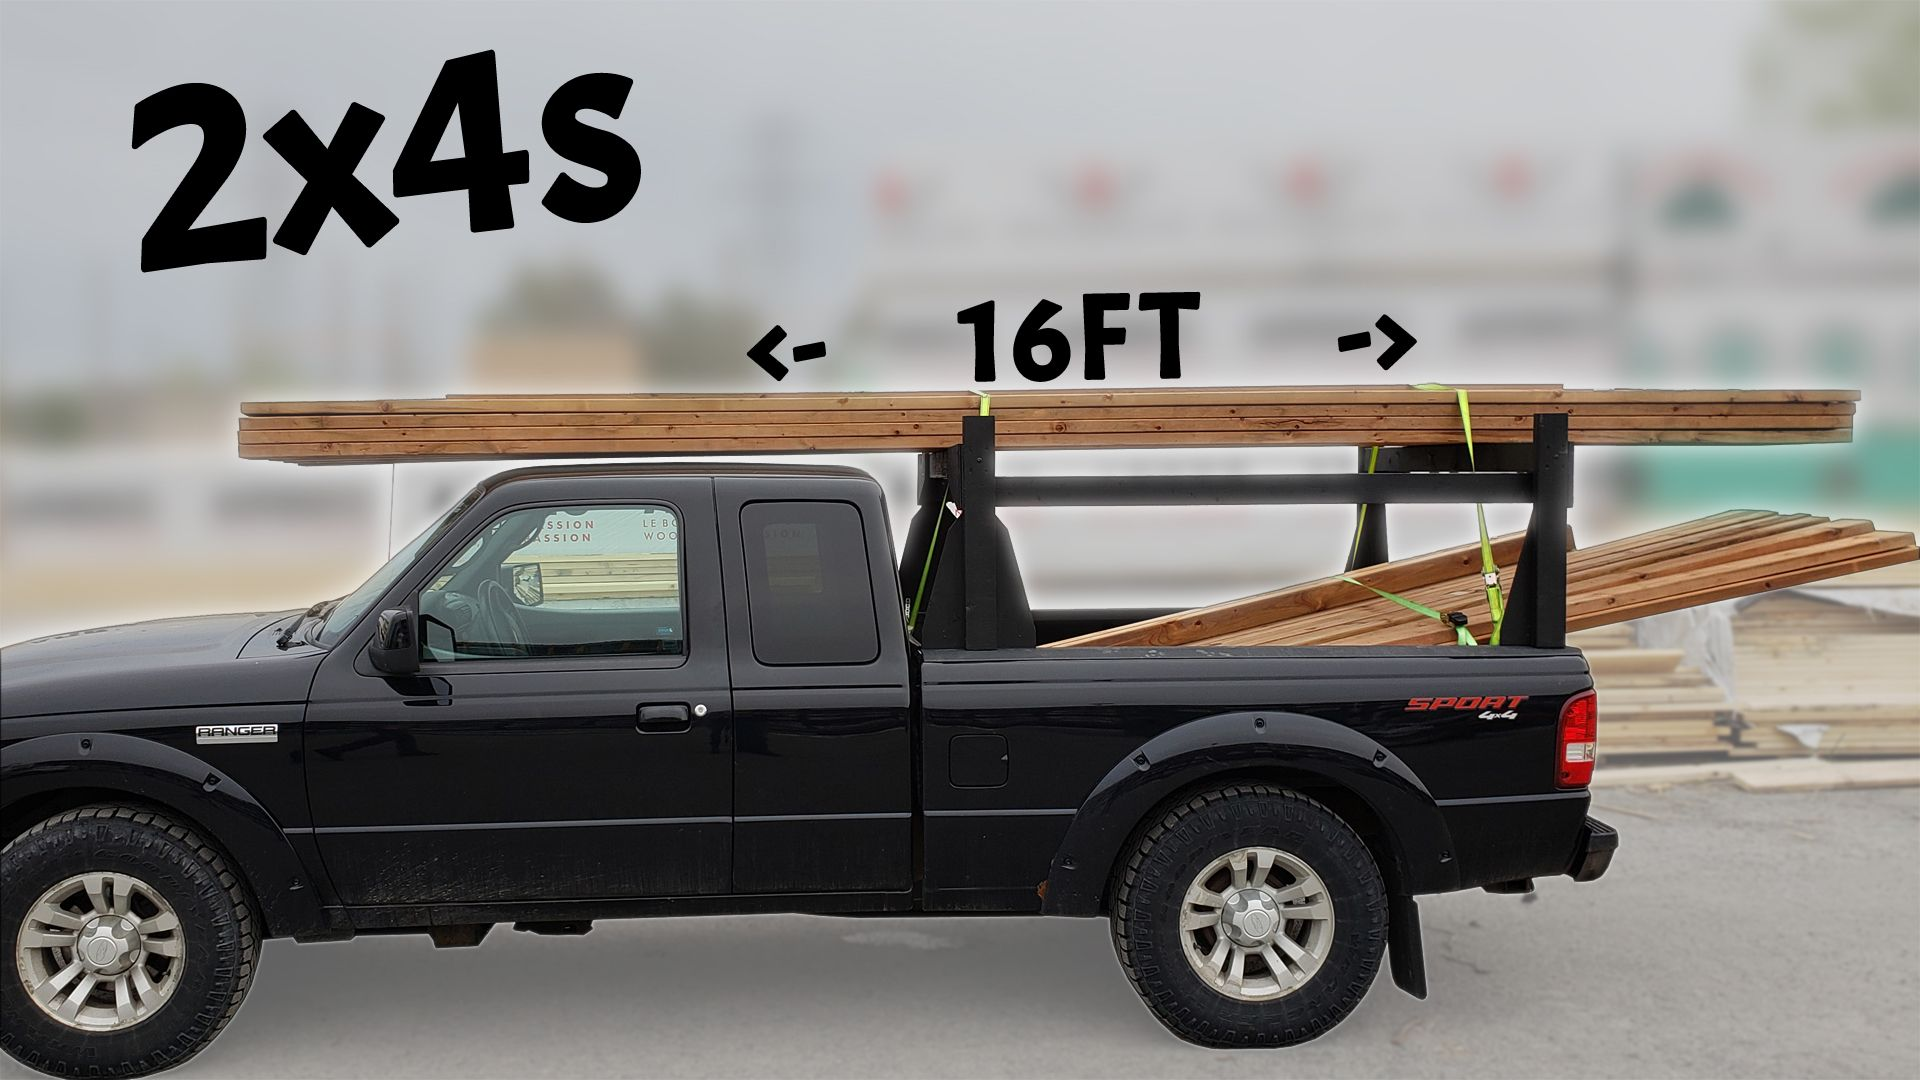 Diy homemade truck rack made with 2x4s wood studs ideal